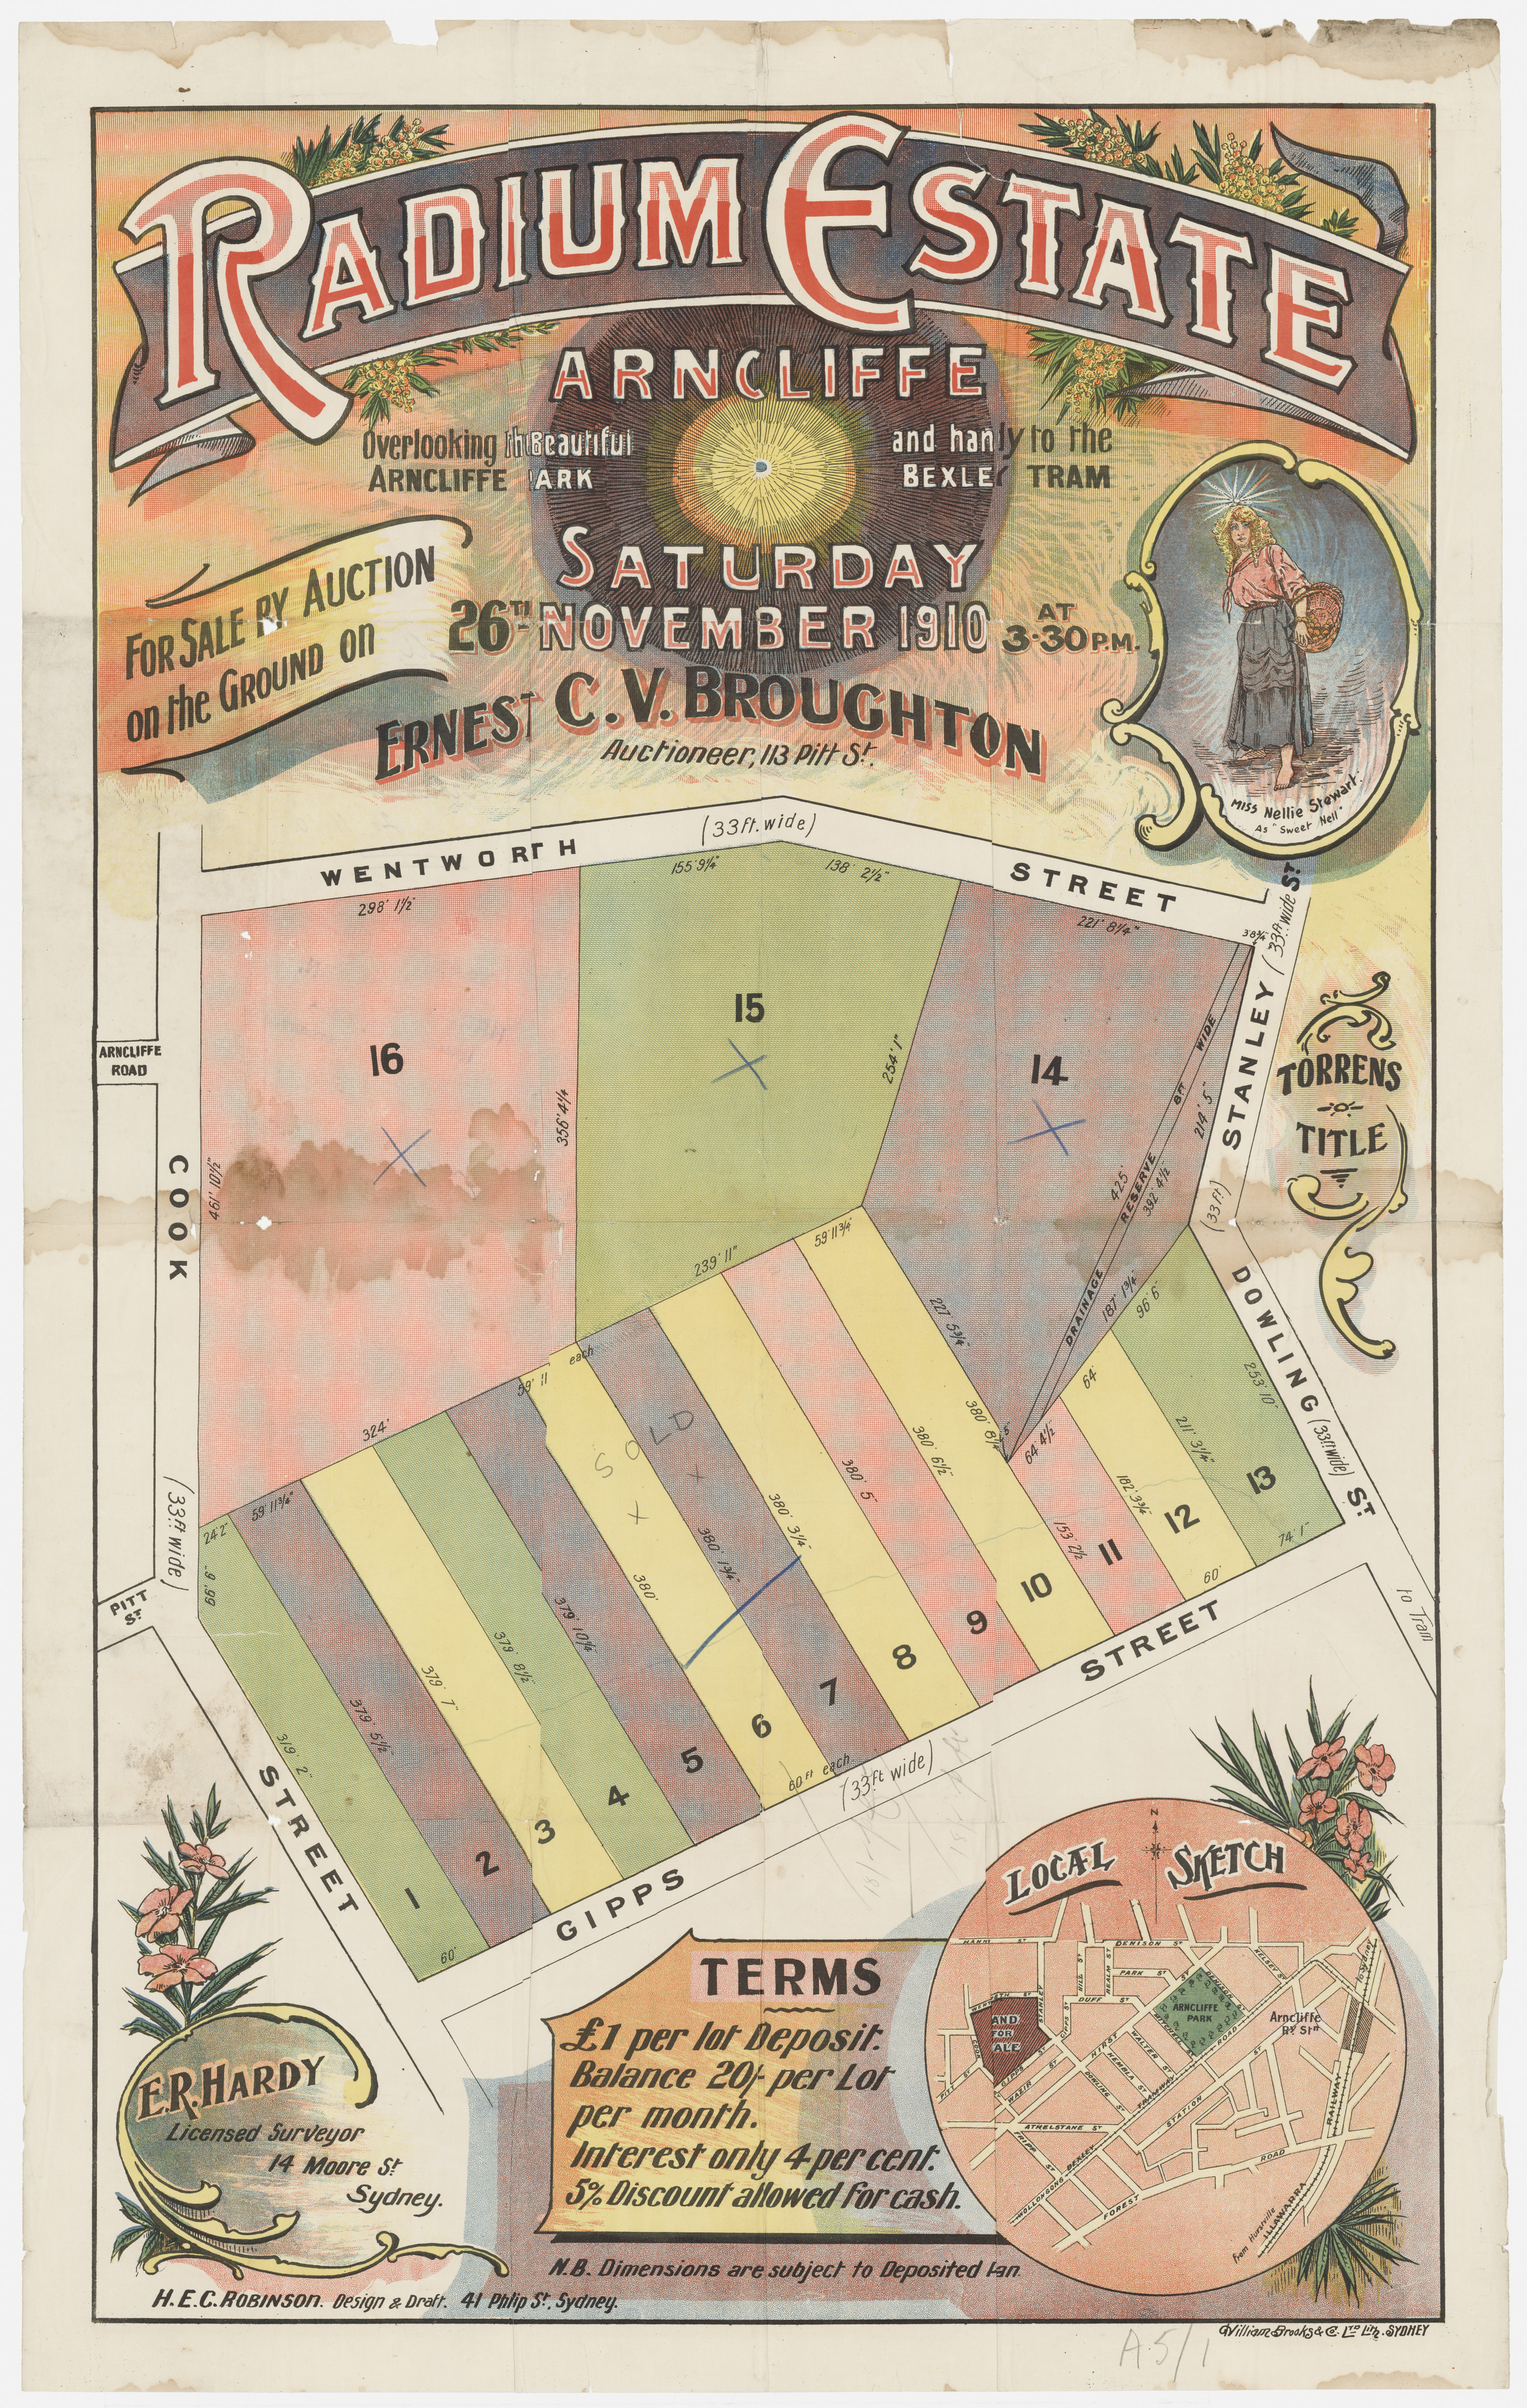 Subdivision Plan: 001 - Z/SP/A5/1 - Radium Estate Arncliffe - Gipps St, 1910